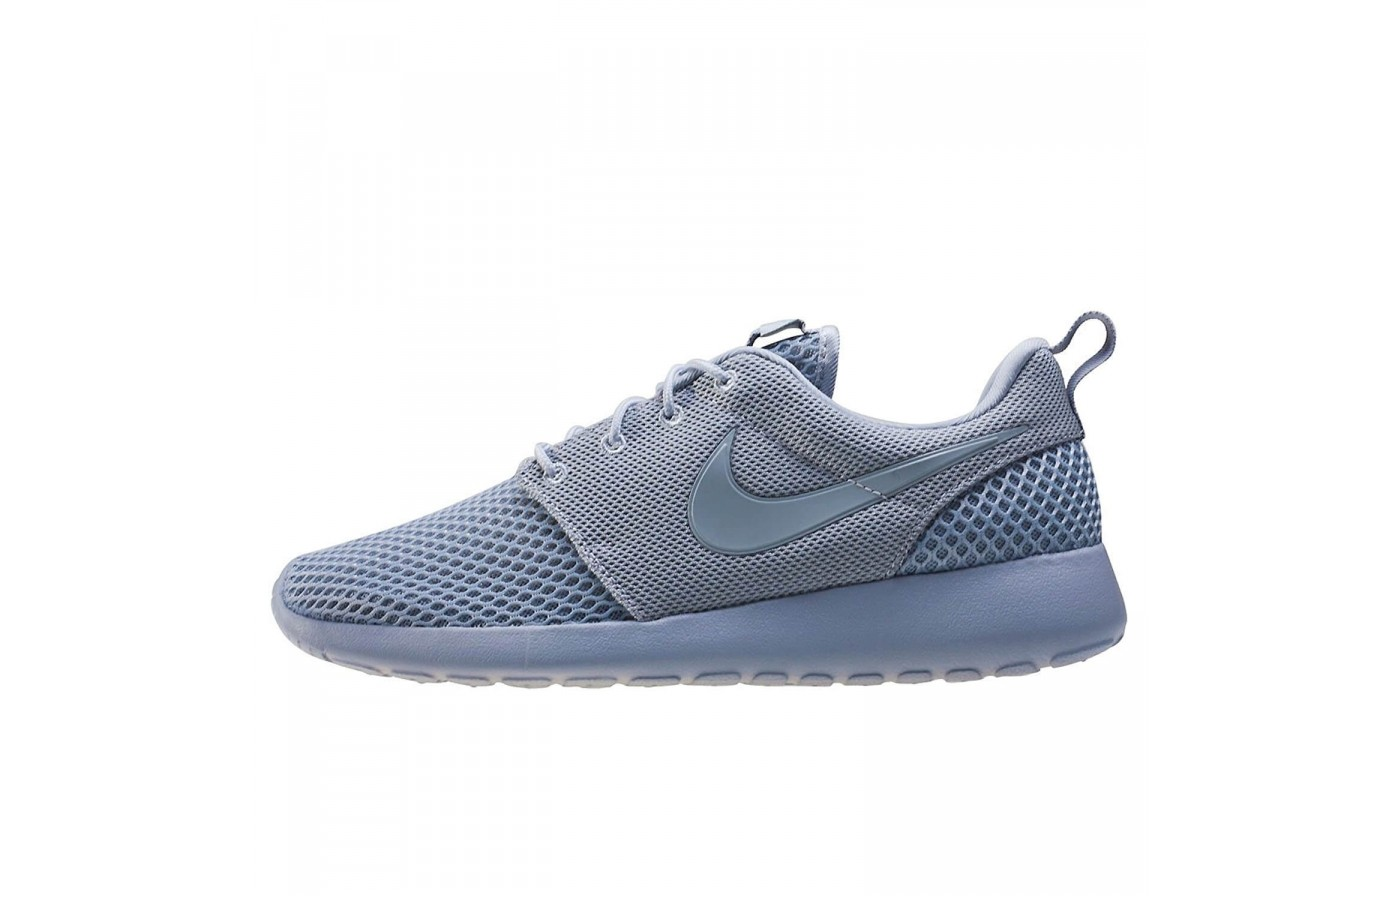 4ea2d48535b0 ... Nike s impeccable sense of style is conspicuously absent in the Roshe  One SE.